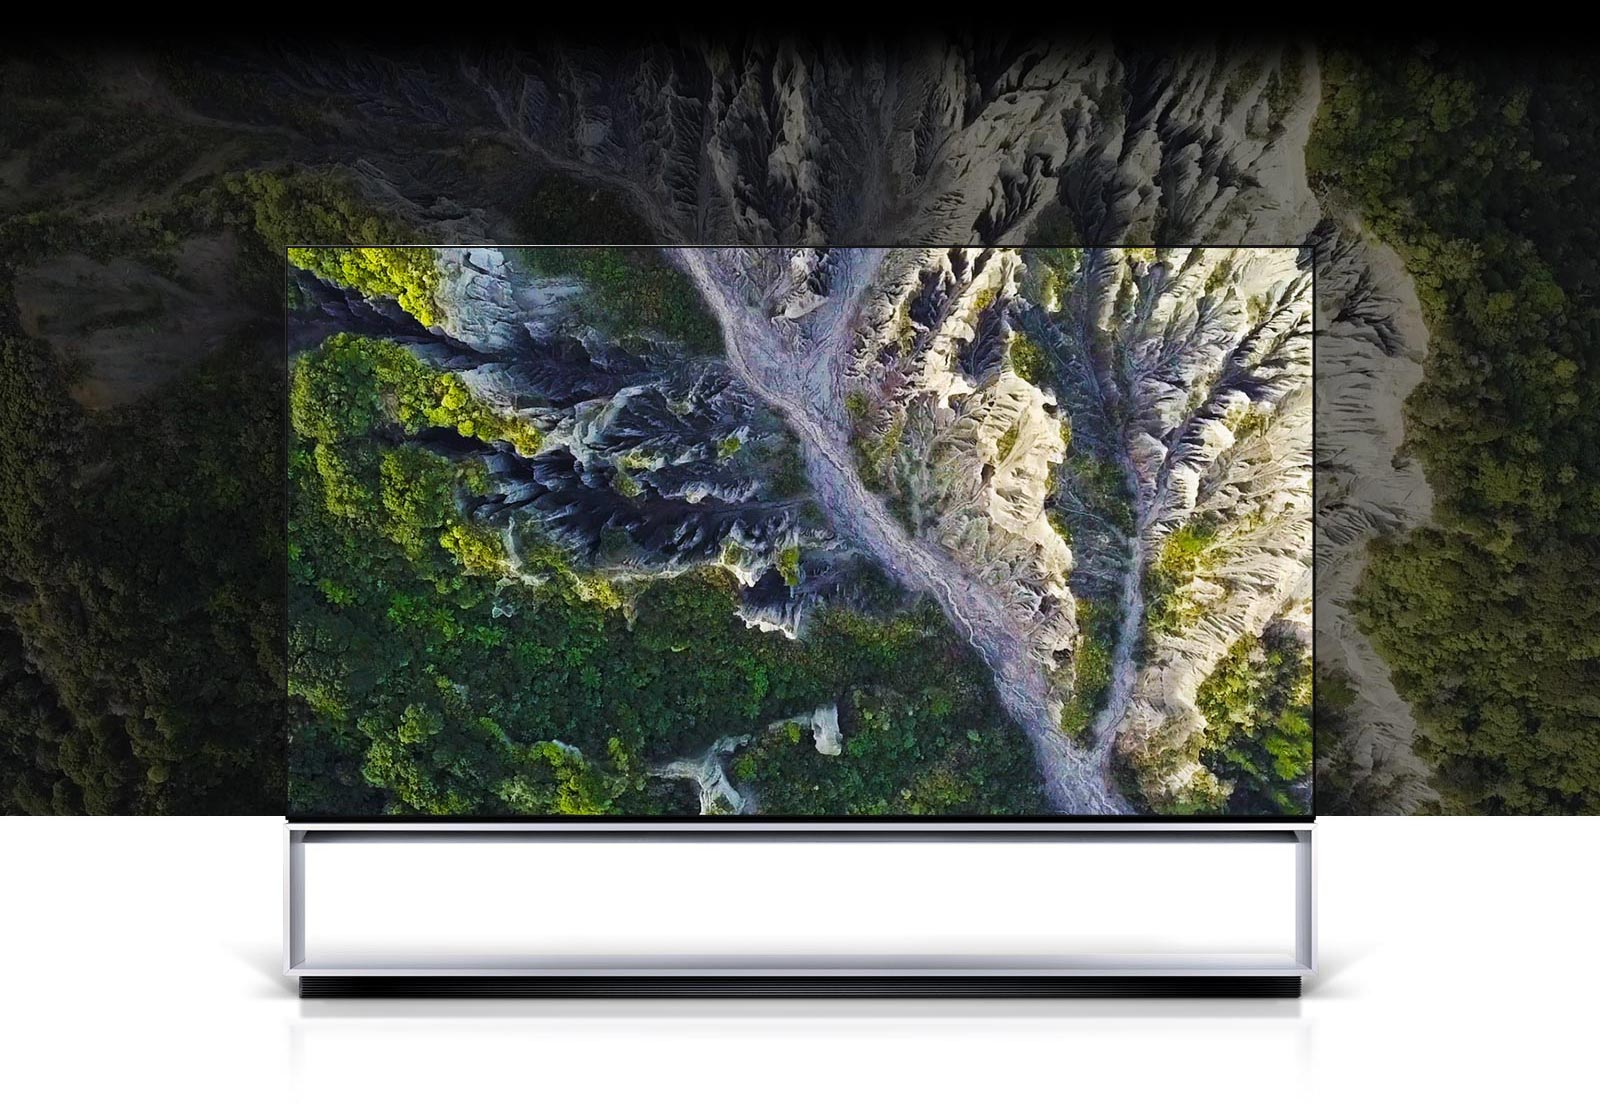 COMING SOON - LG SIGNATURE Z9 88 inch Class 8K Smart OLED TV w/AI ThinQ®  (87 6'' Diag)